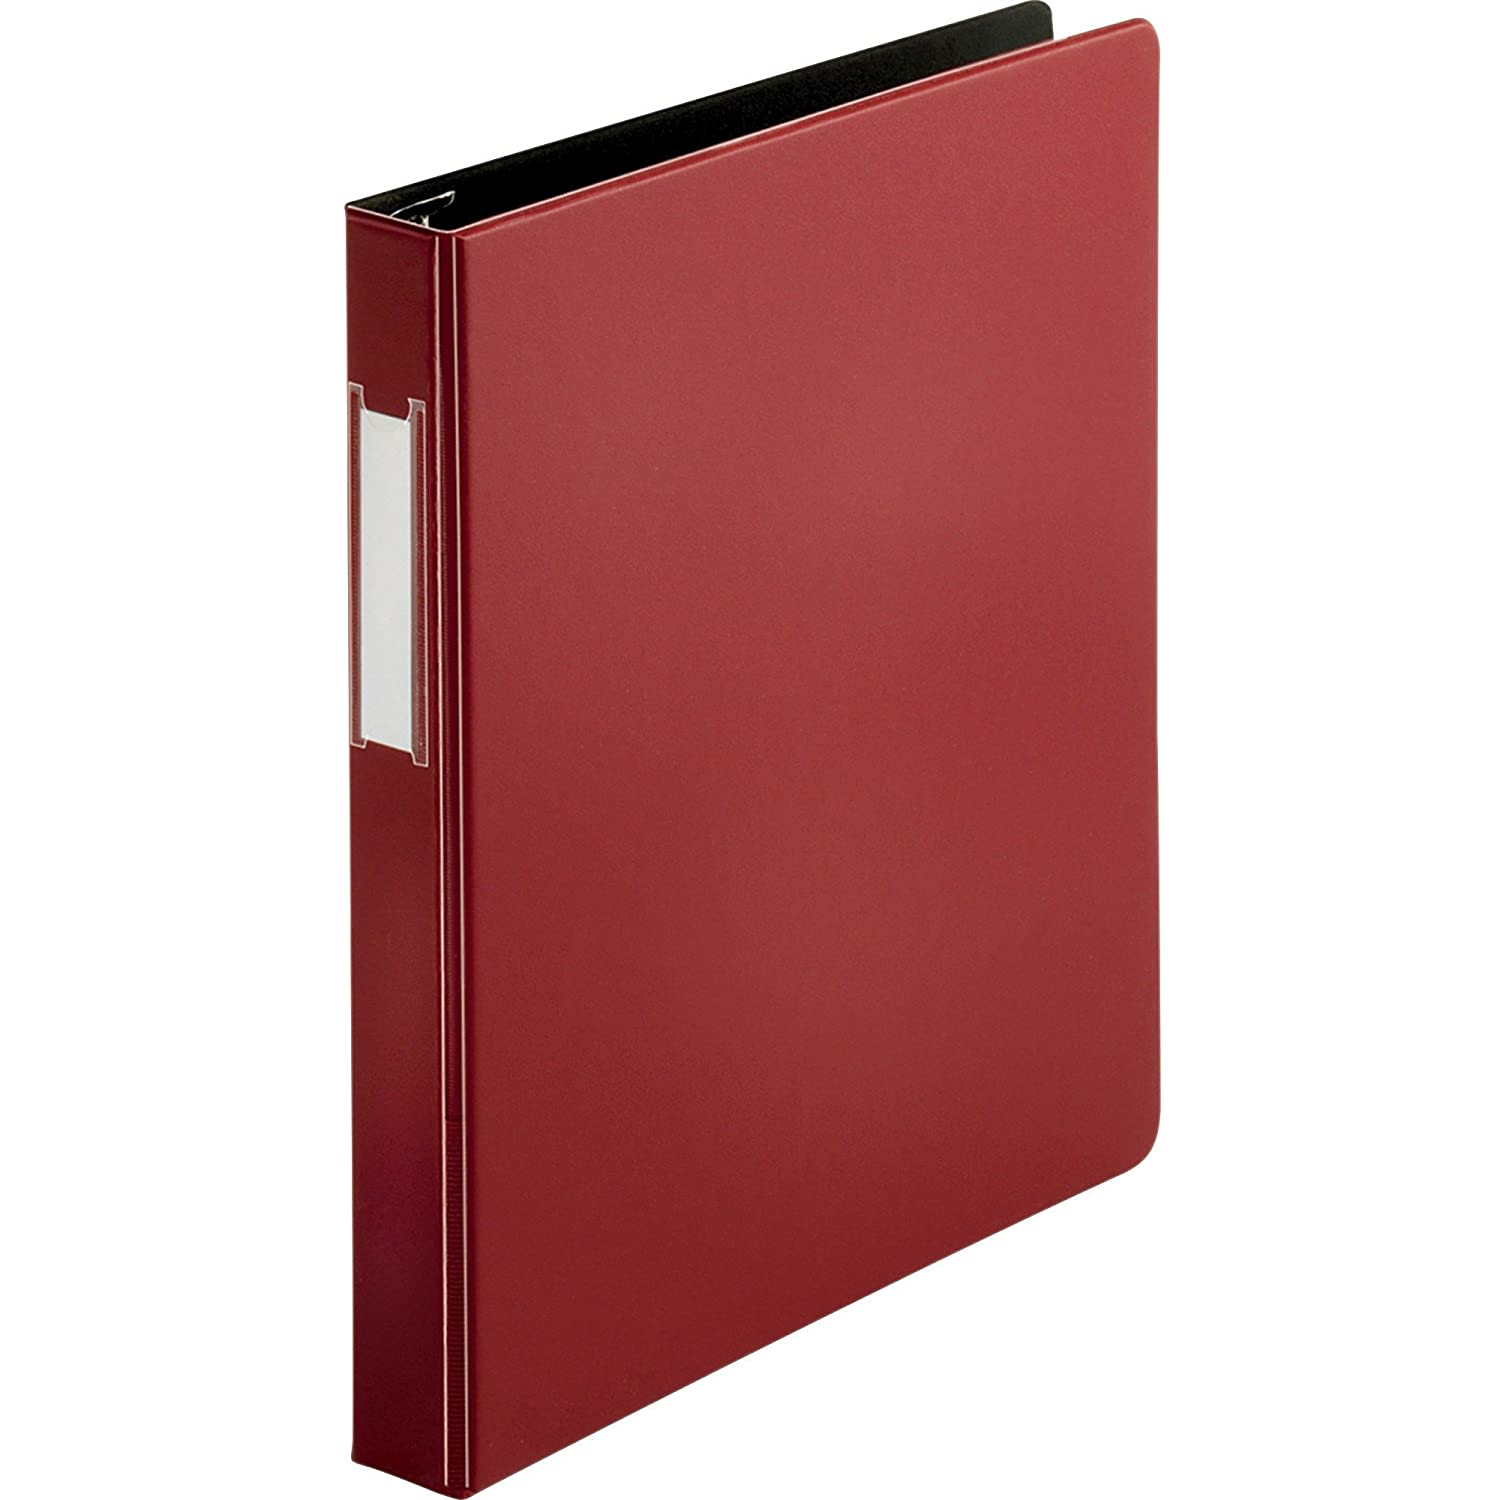 Business Source Slanted D-Ring Binder, Color: Burgundy, Size: 1 Size: 1